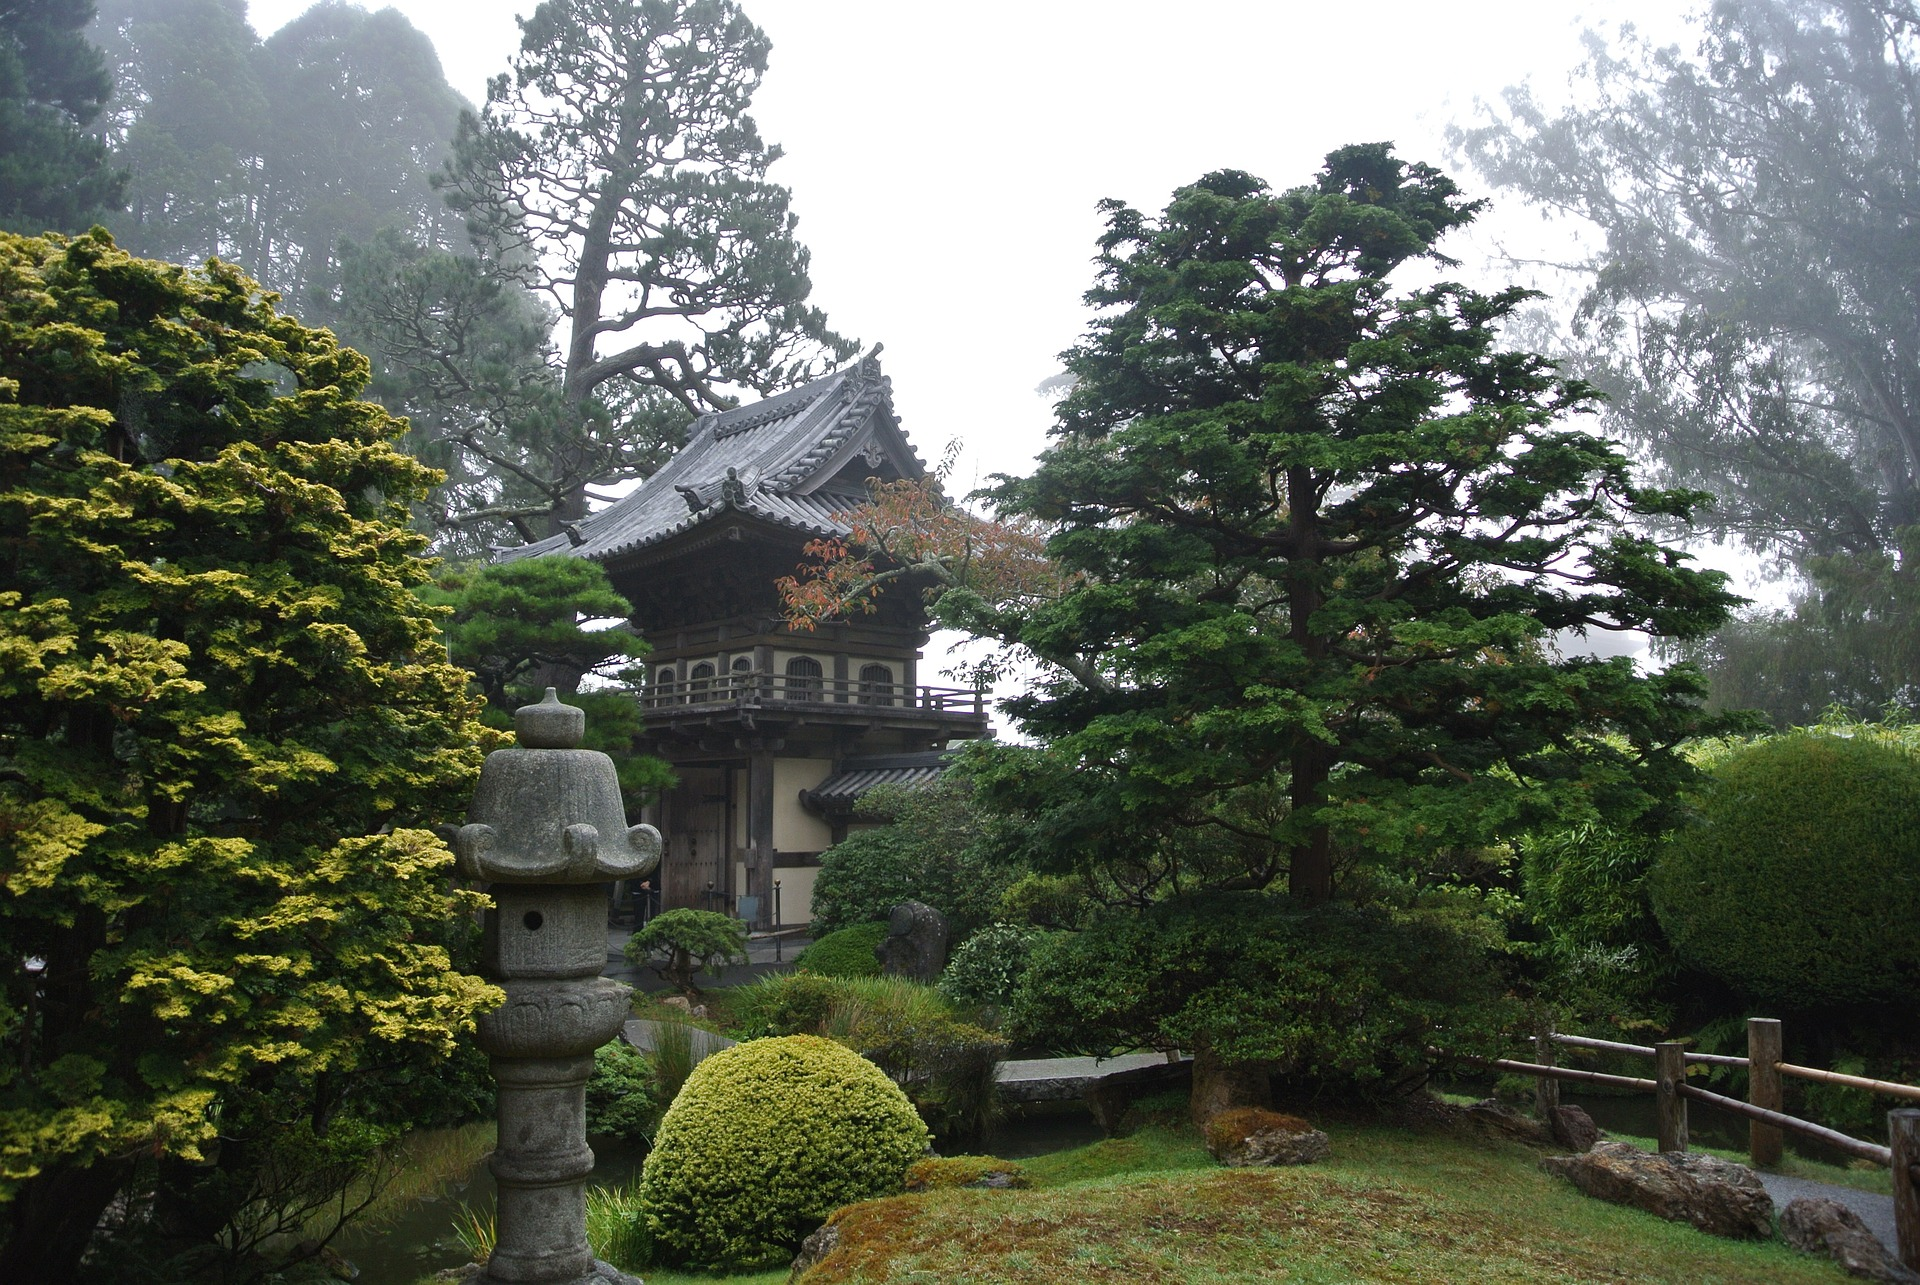 Japanese garden with pagoda tucked among trees